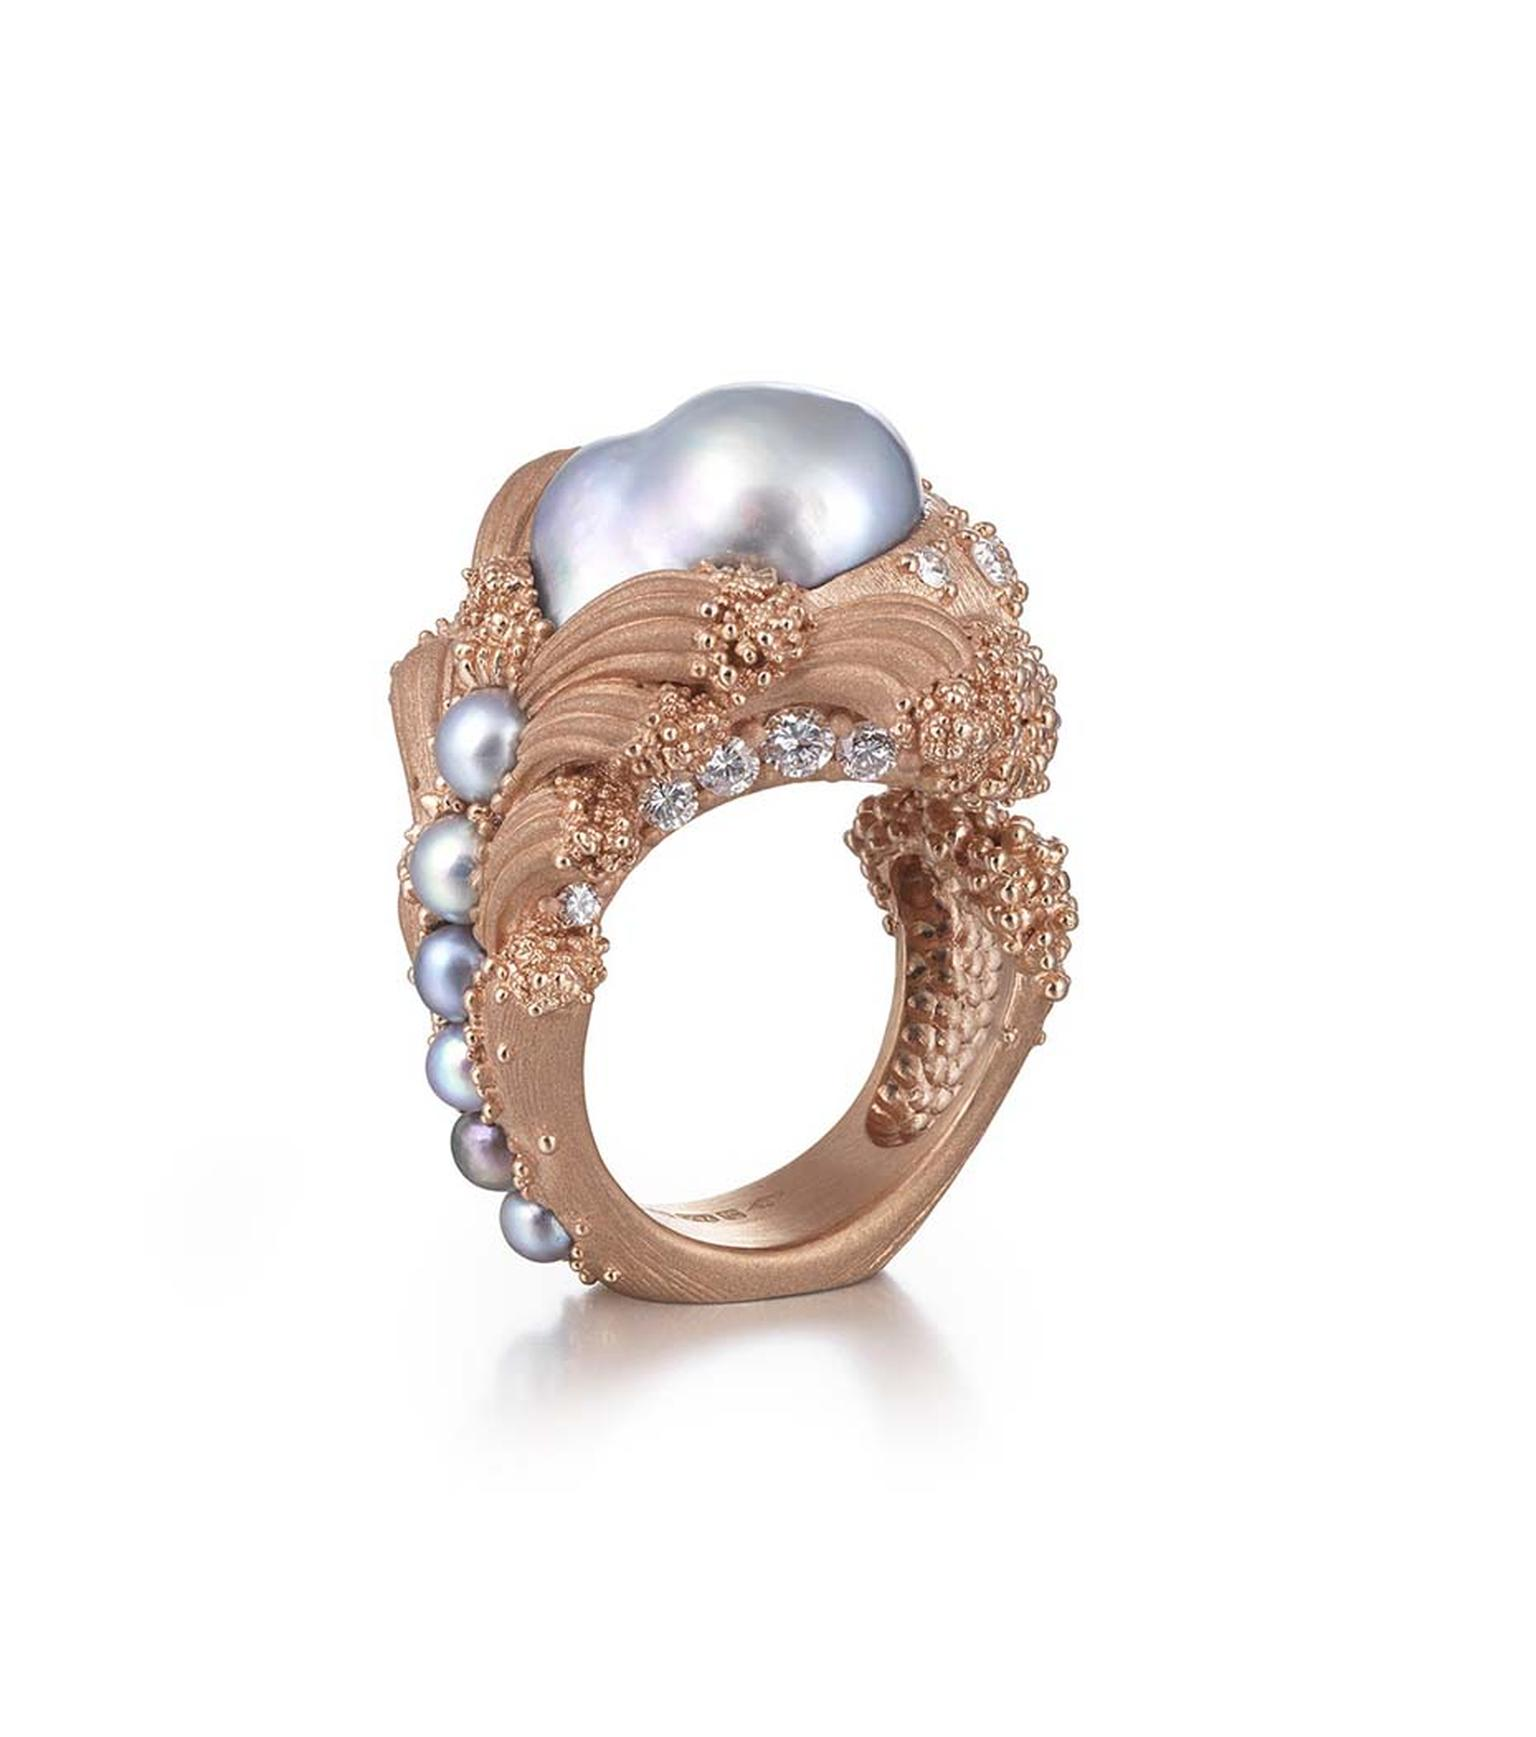 "Ornella Iannuzzi's ""Uprising"" baroque pearl ring, currently on display at Goldsmiths' Hall, was the winner of two prestigious gold awards at the recent Goldsmiths' Craft & Design Council Awards."